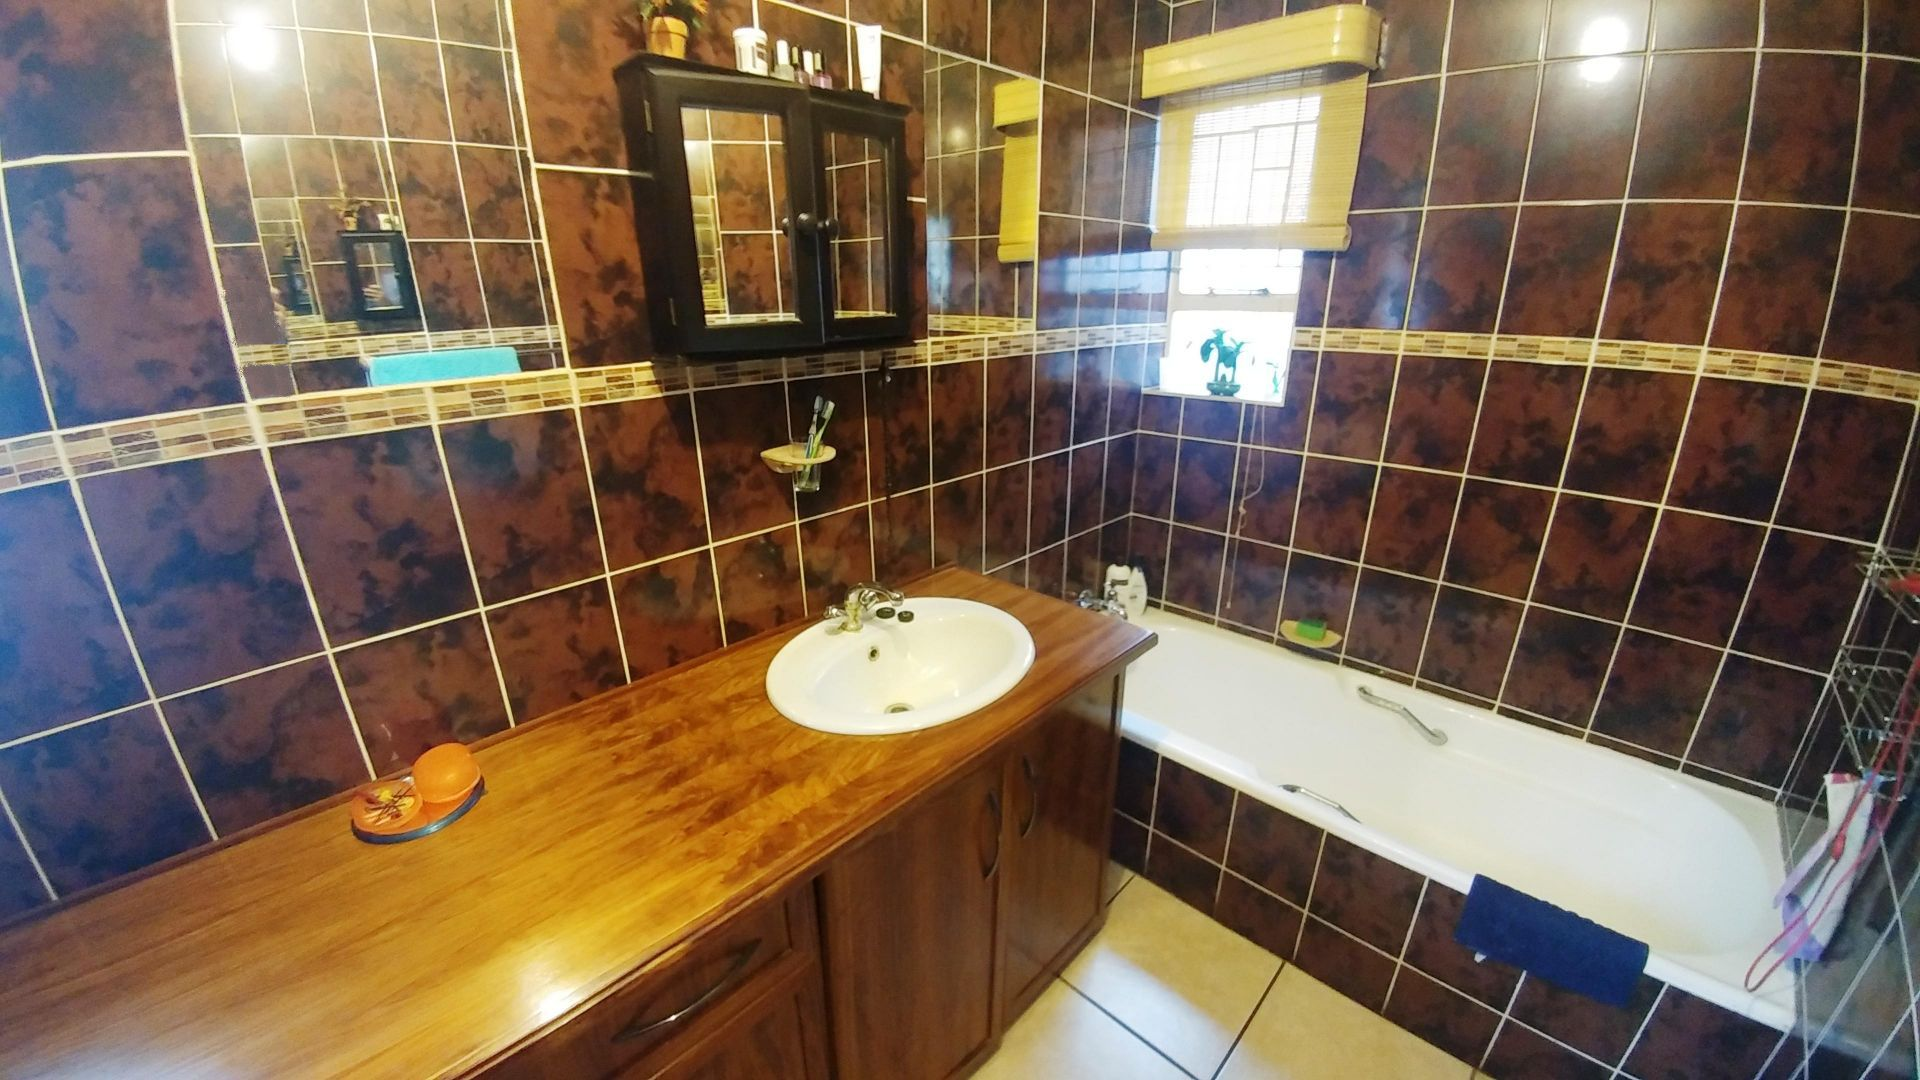 Potchefstroom Central property for sale. Ref No: 13508234. Picture no 18